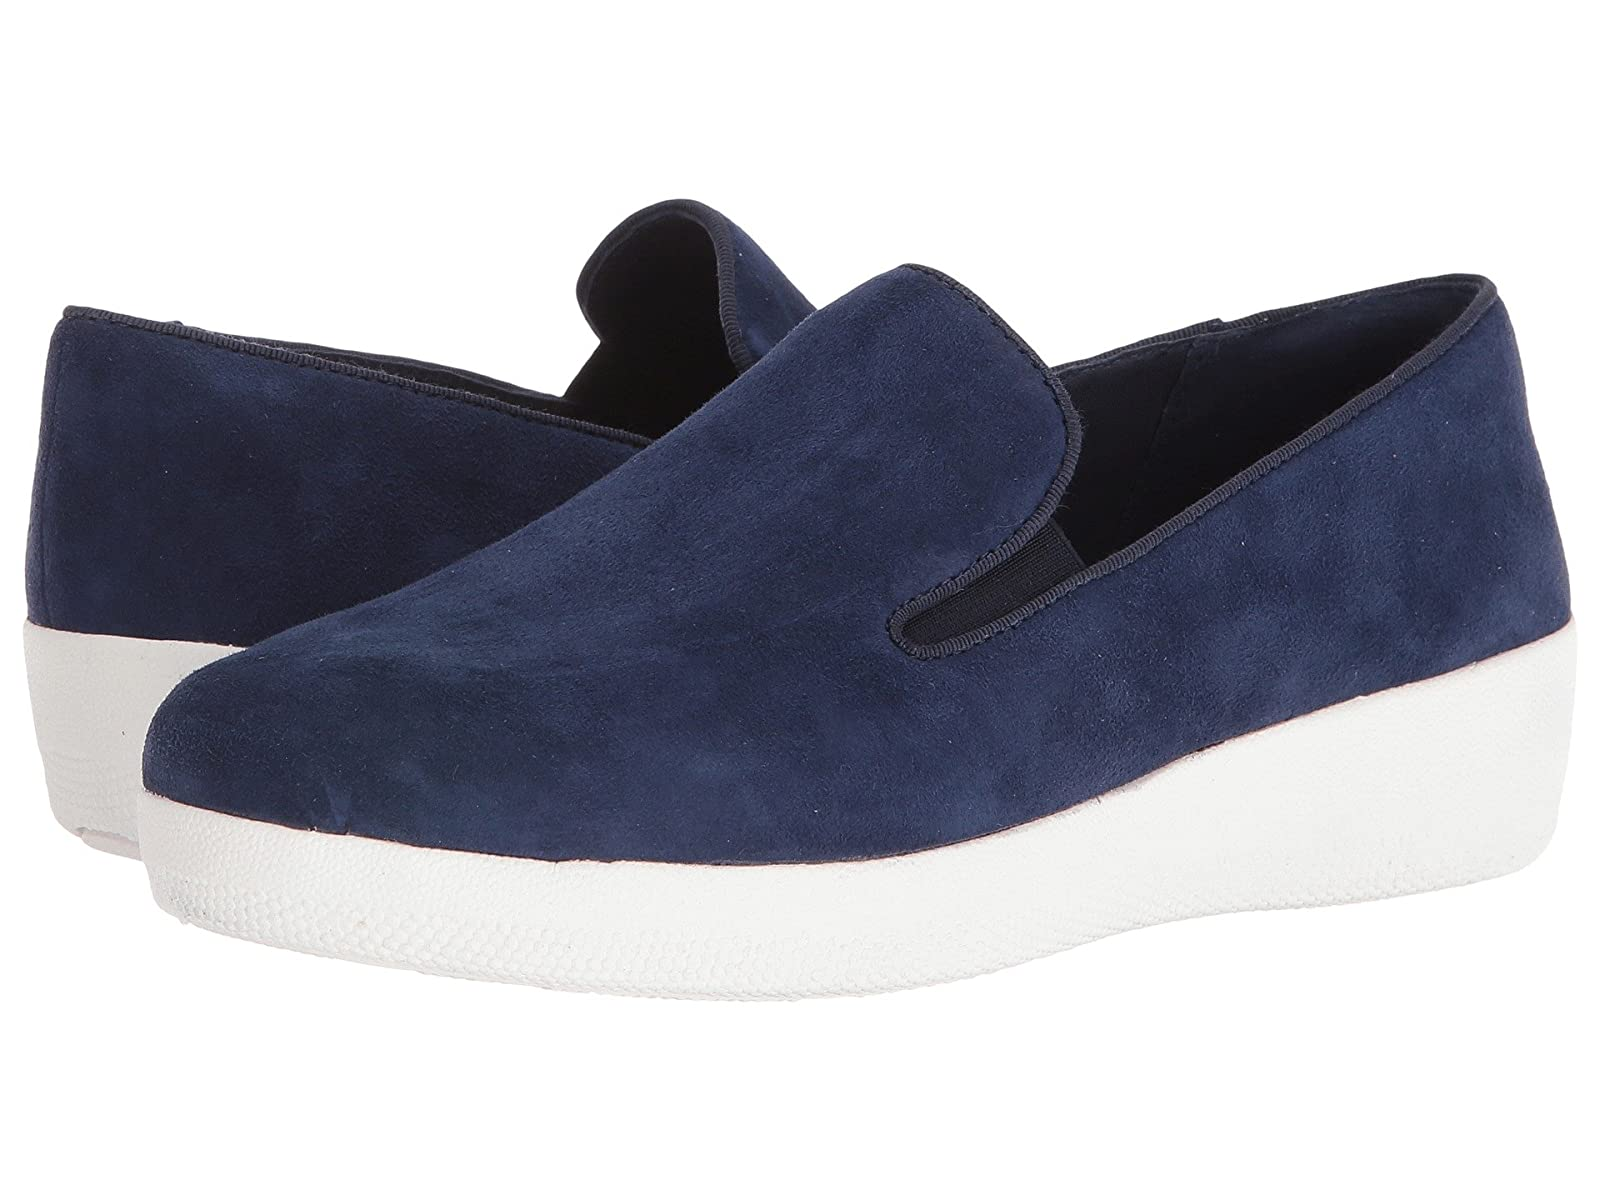 FitFlop SuperskateCheap and distinctive eye-catching shoes